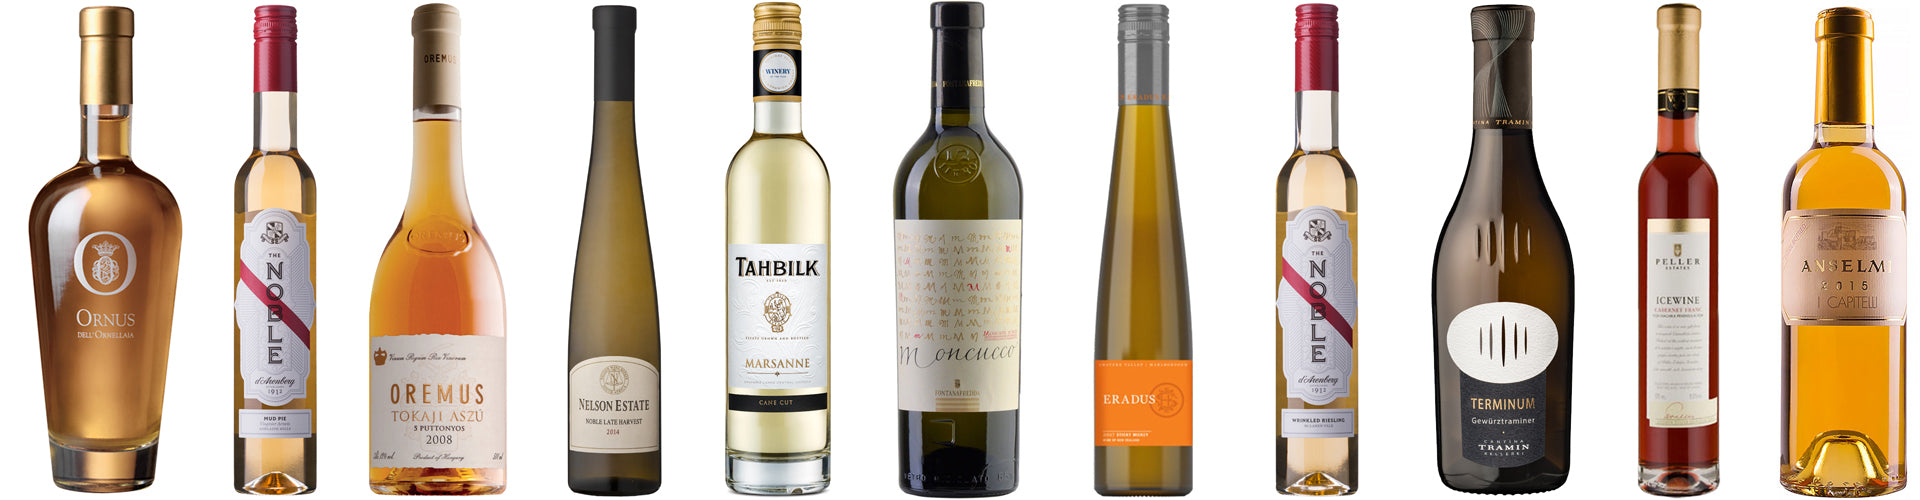 Collection of Dessert Wines Bottles from Around the World